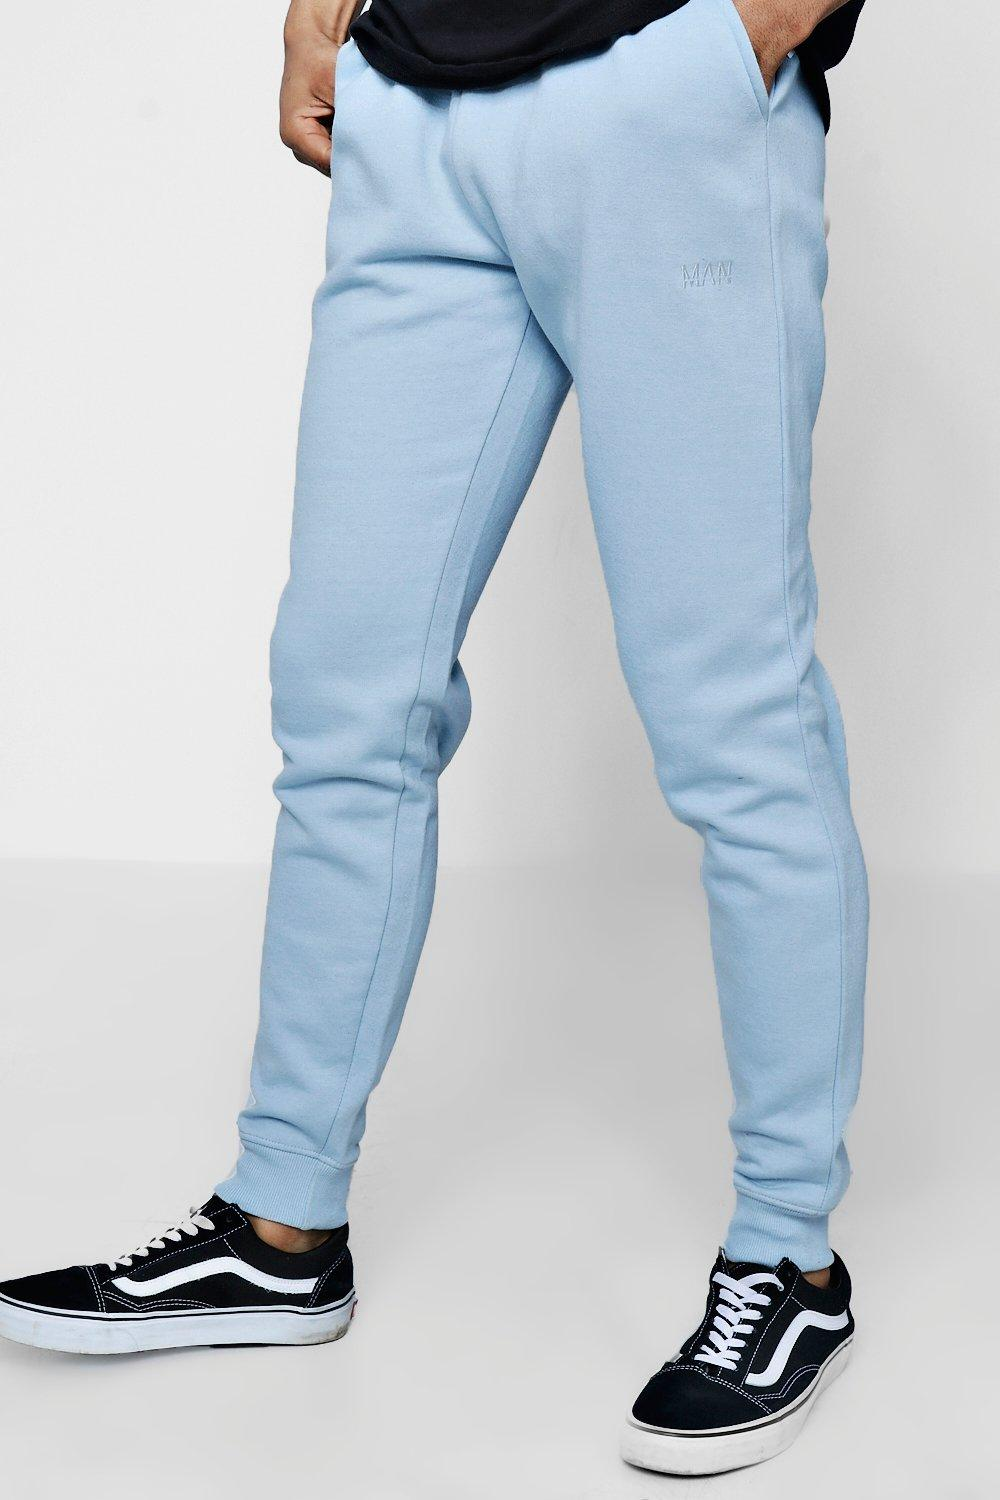 MAN Embroidered dusty blue Skinny Joggers Original w0dUxq4w